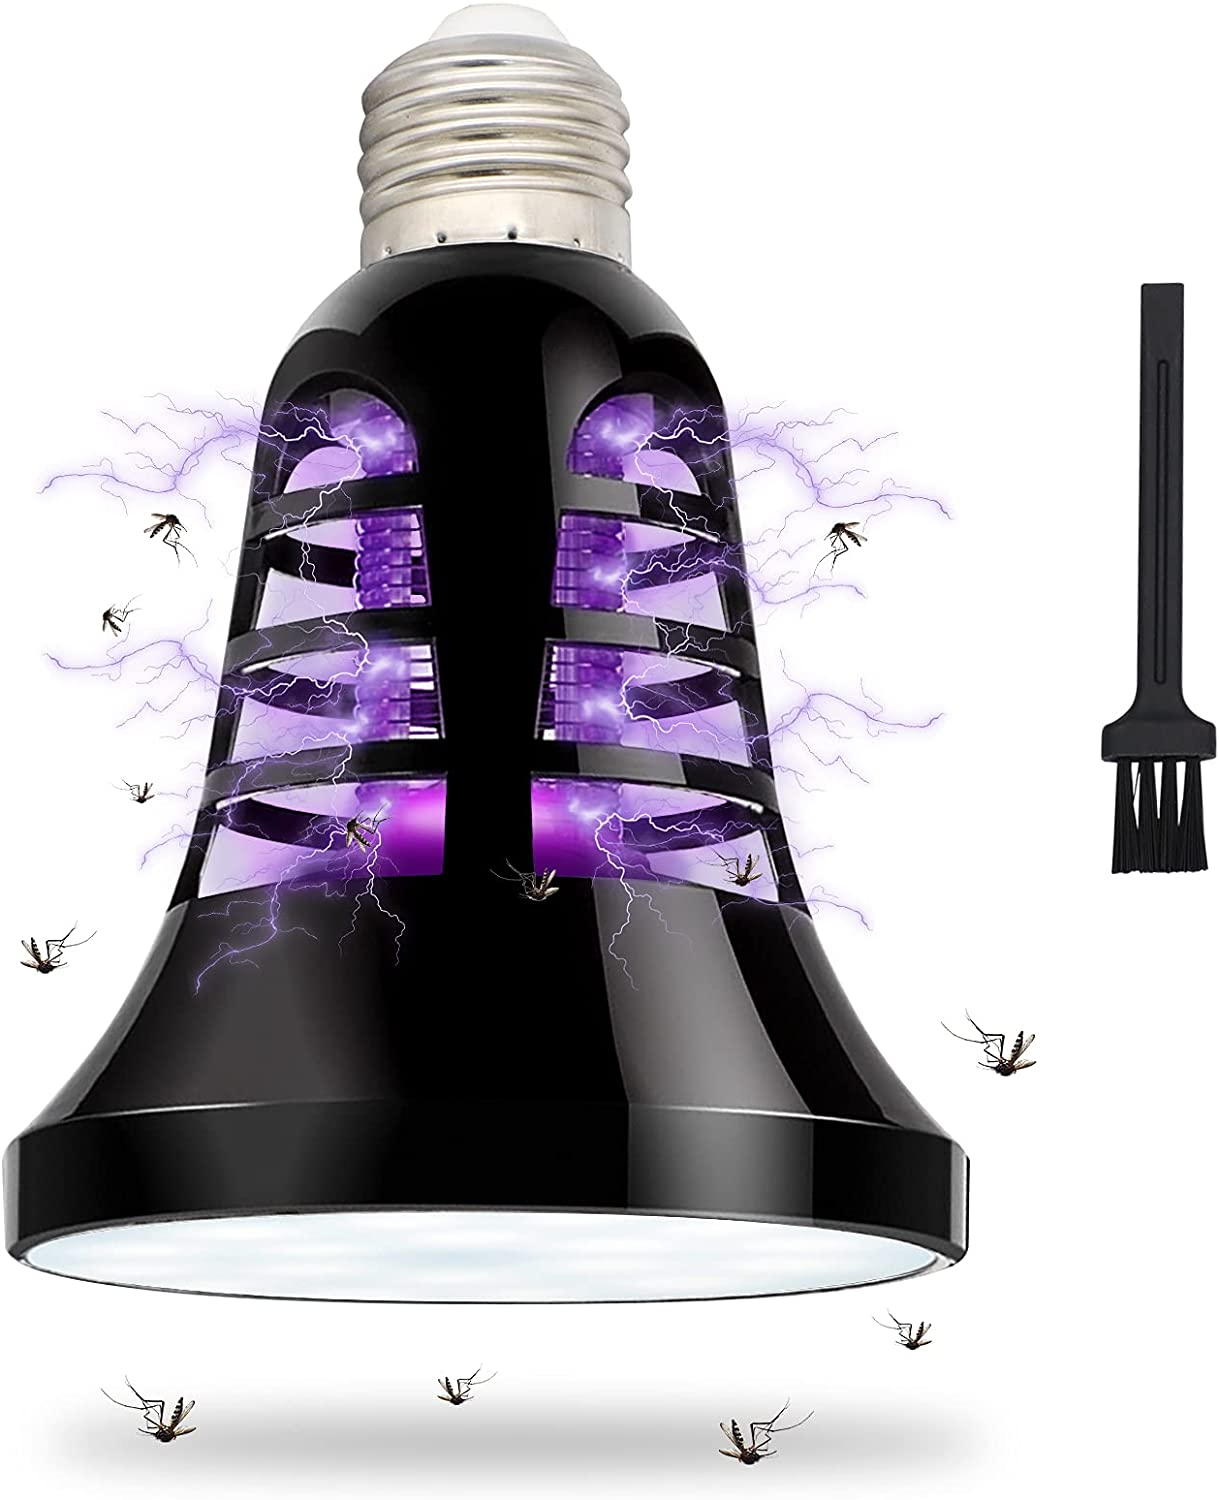 COZYLIFE Bug Zapper Light Bulb,2-in-1 UV Mosquito Killer Lamp Indoor LED Light Suitable for E26/E27 Light Bulb Socket,Electric Fly Insect Trap Chemical-Free for Home Kitchen Backyard Patio